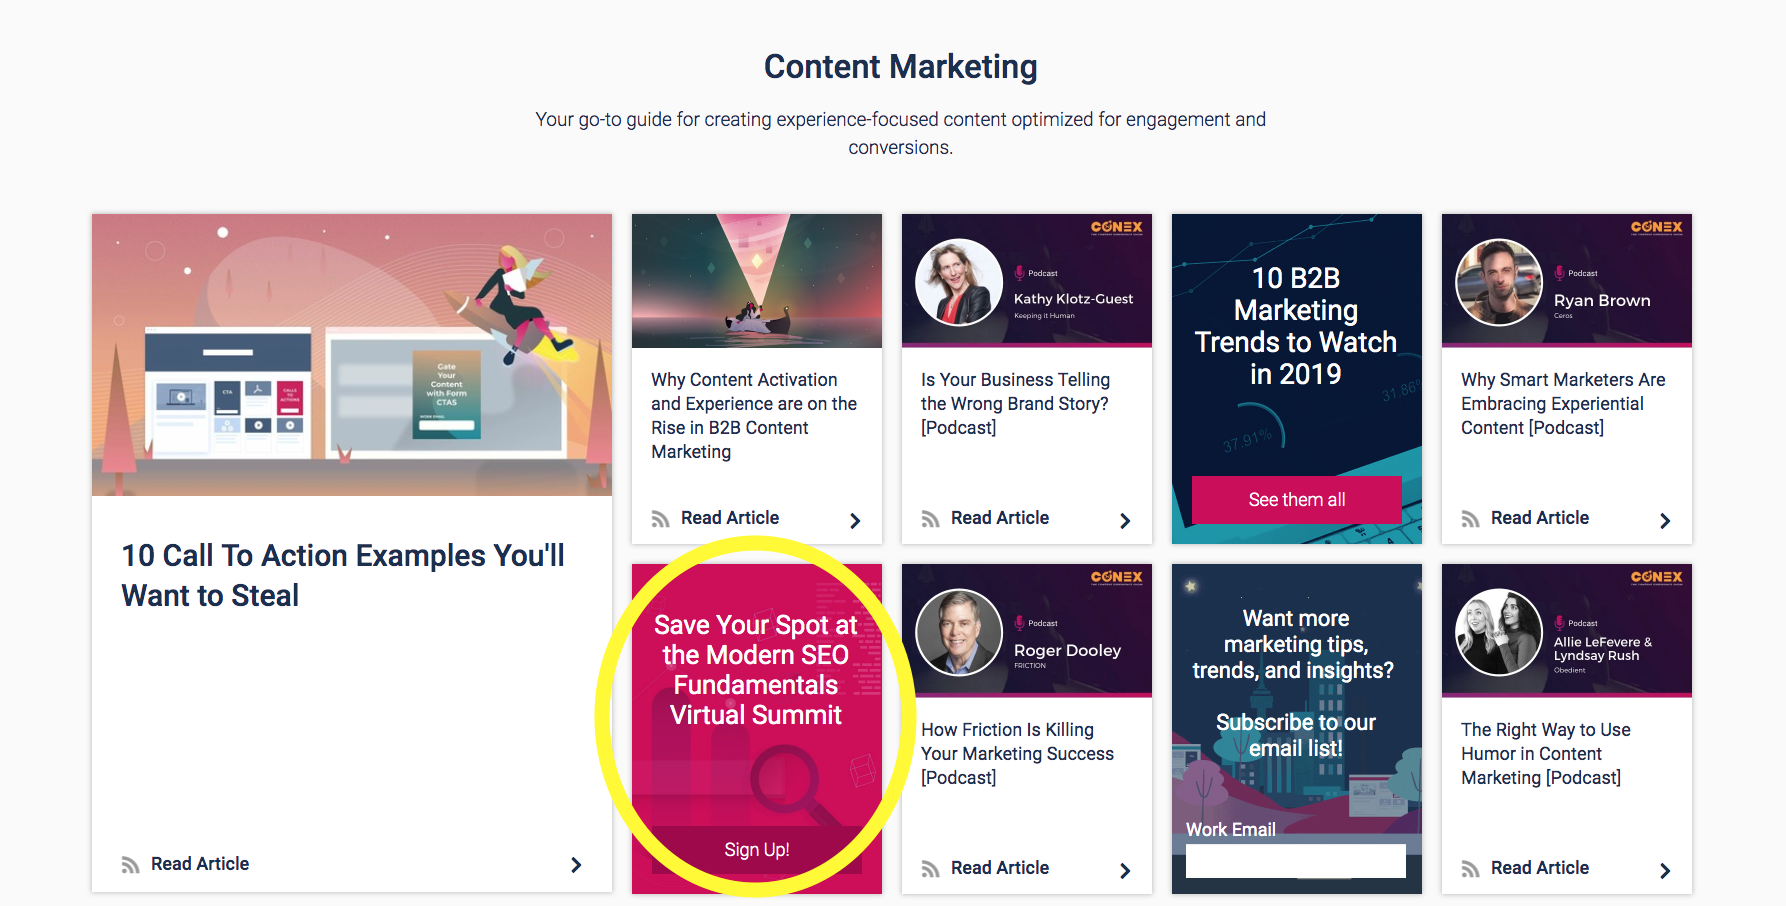 Collection of content with webinar sign-up CTA circled